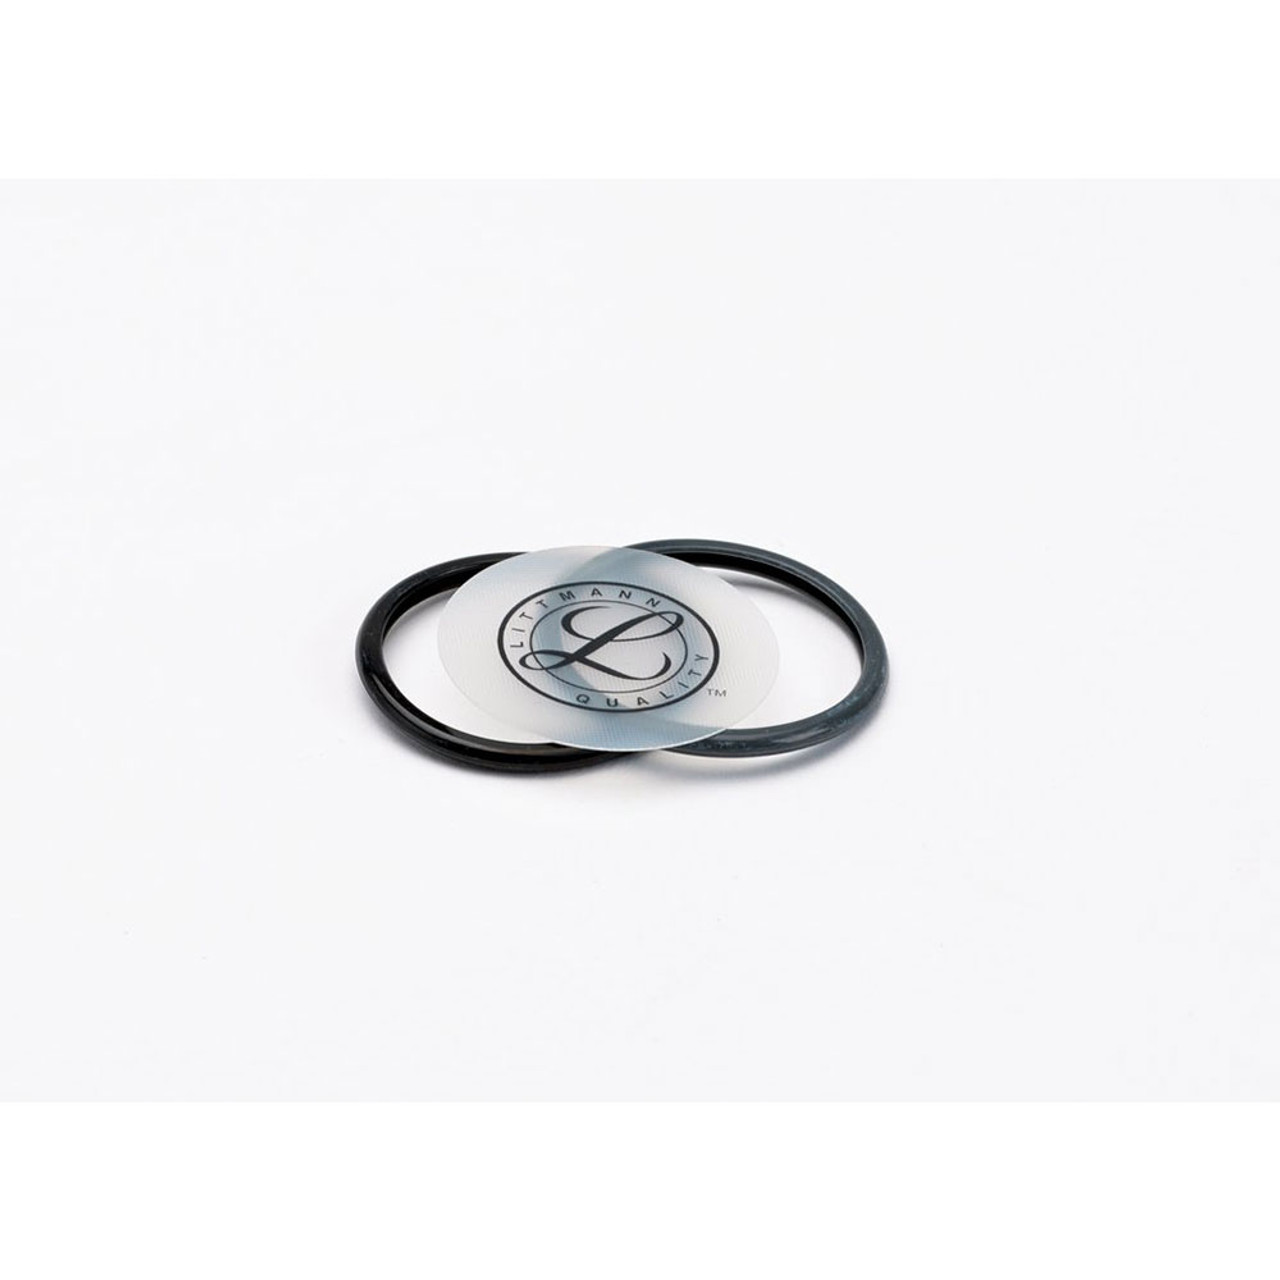 Littmann Stethoscope Spare Parts Kit, Classic II Pediatric Diaphragm Assembly, 40012